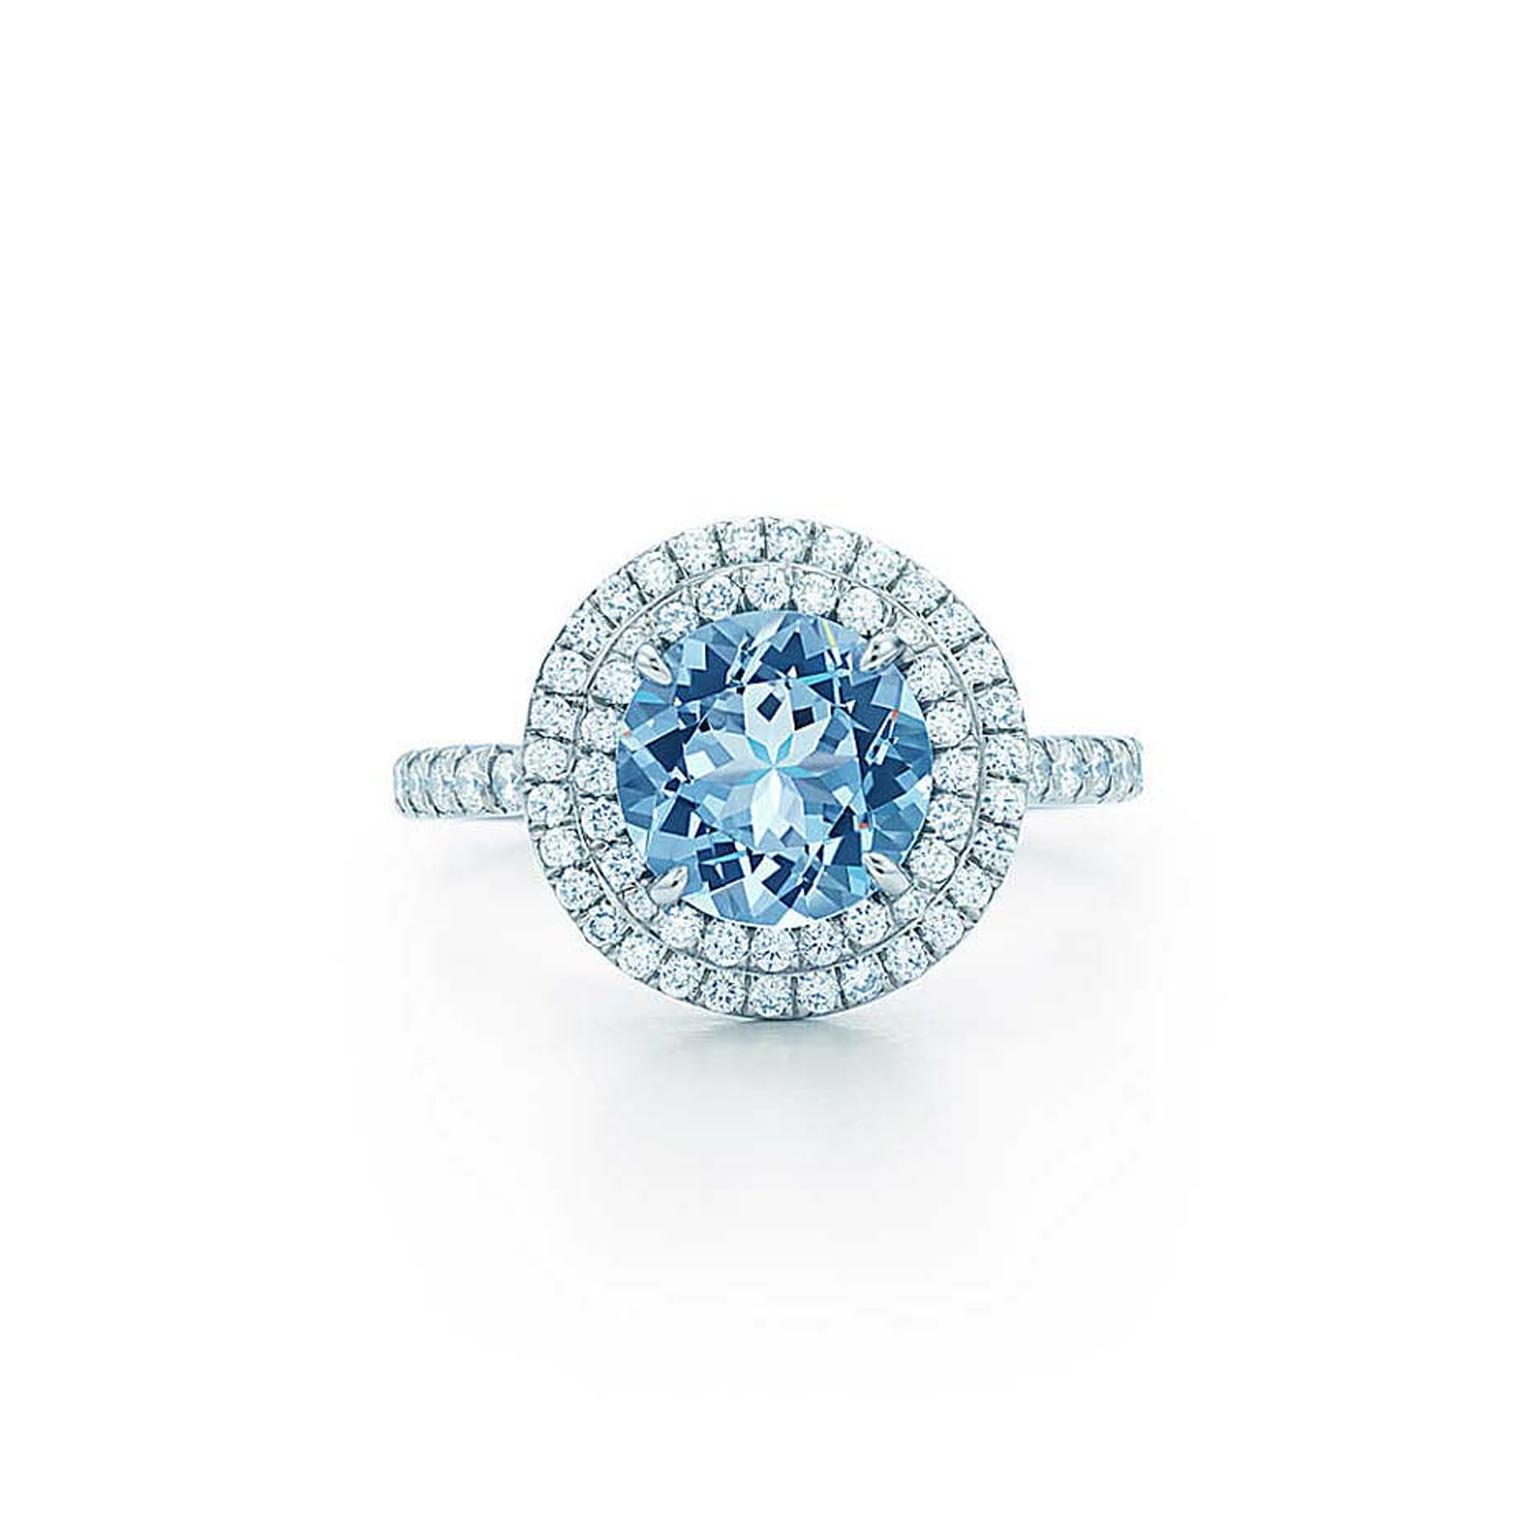 Tiffany & Co. Soleste platinum ring featuring a 1.25ct aquamarine and diamonds (£5,450).